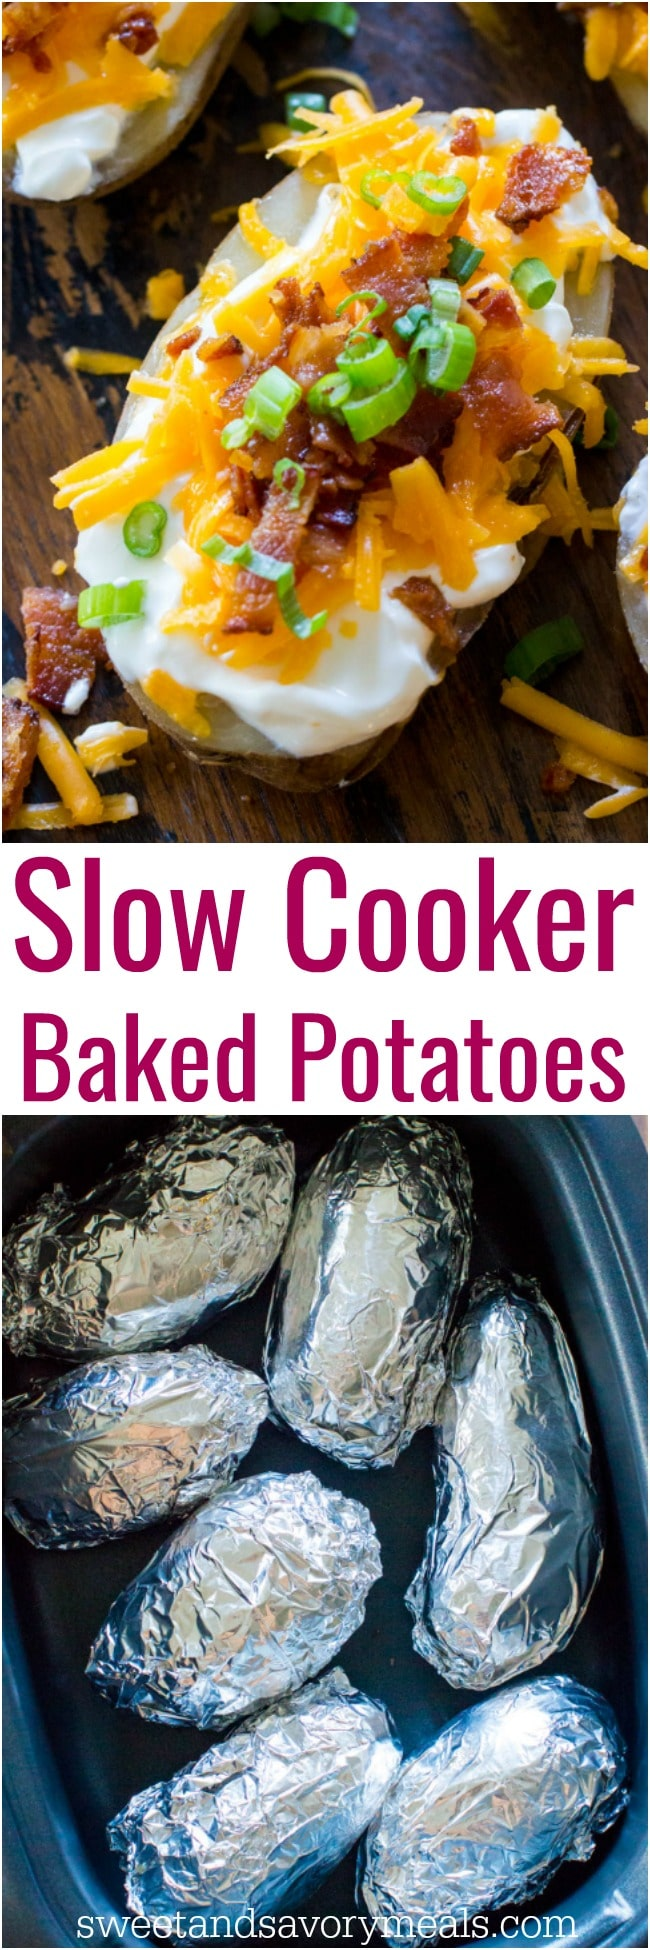 Easy Slow Cooker Baked Potatoes are the perfect side dish that you can make in your slow cooker year around. Seriously, its the easiest recipe you will ever make!